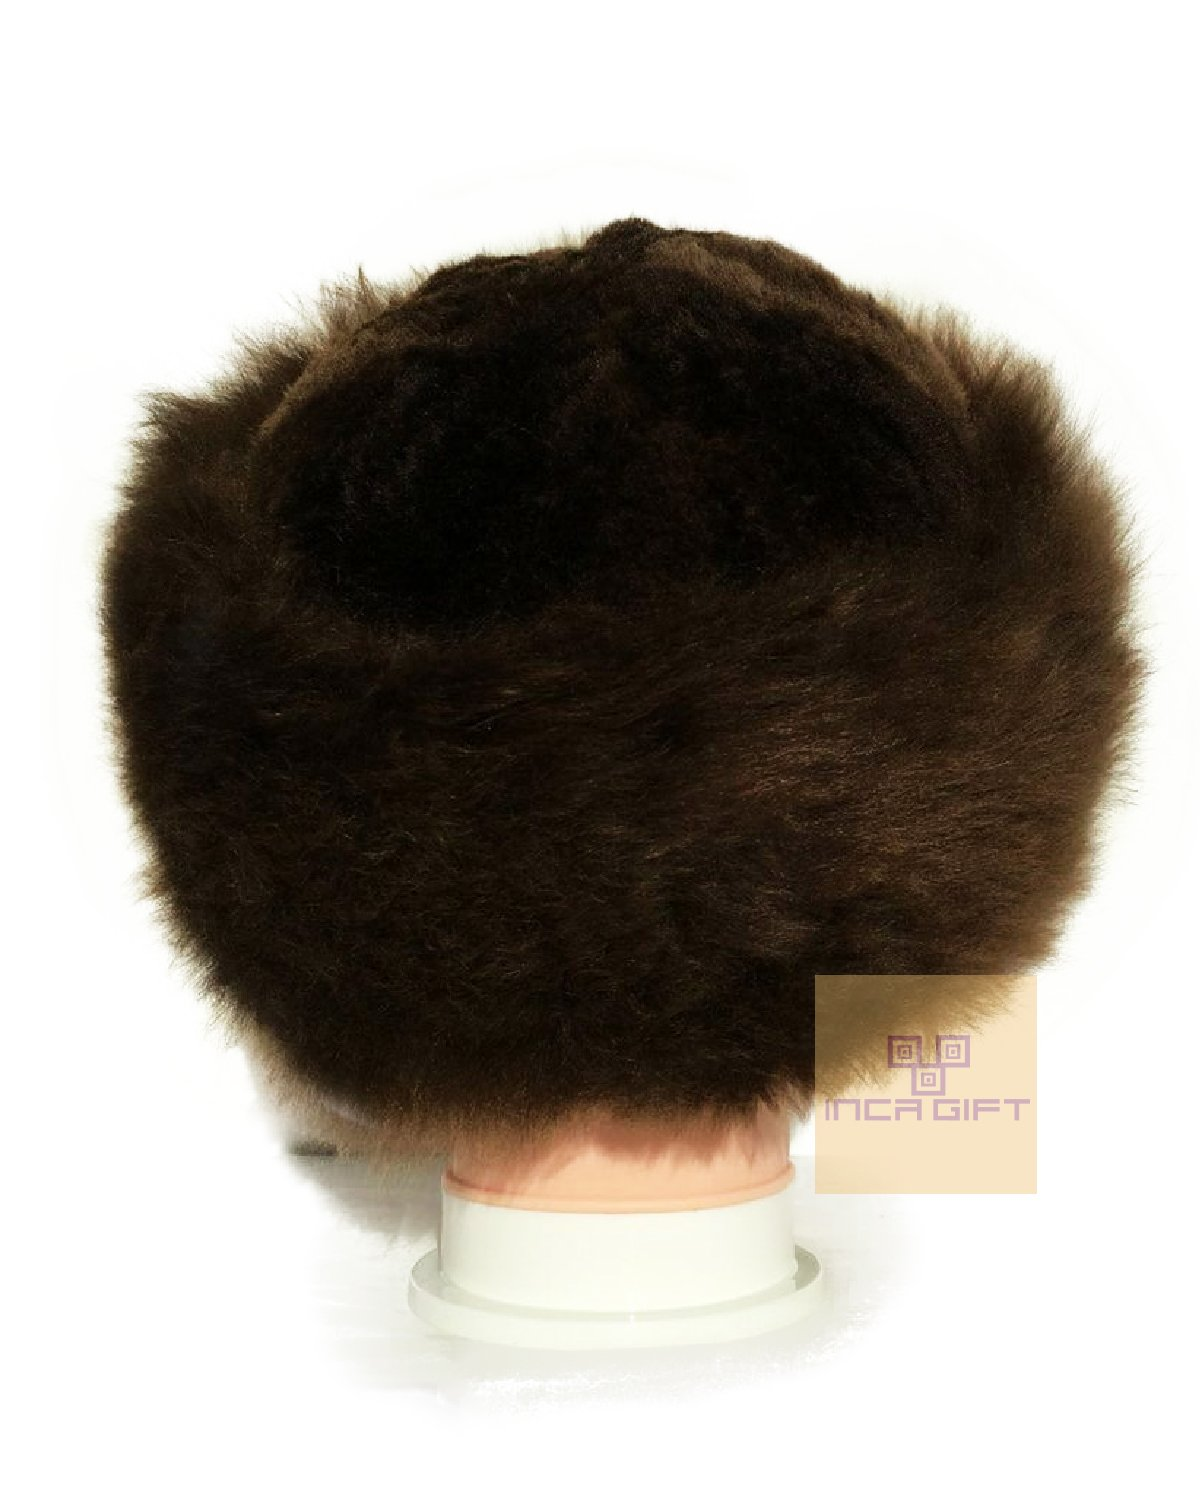 Authentic Premium Baby Alpaca Fur Hat - Russian Cossack Style Hat Winter -Wrap Hat (Brown) by IncaGift (Image #1)